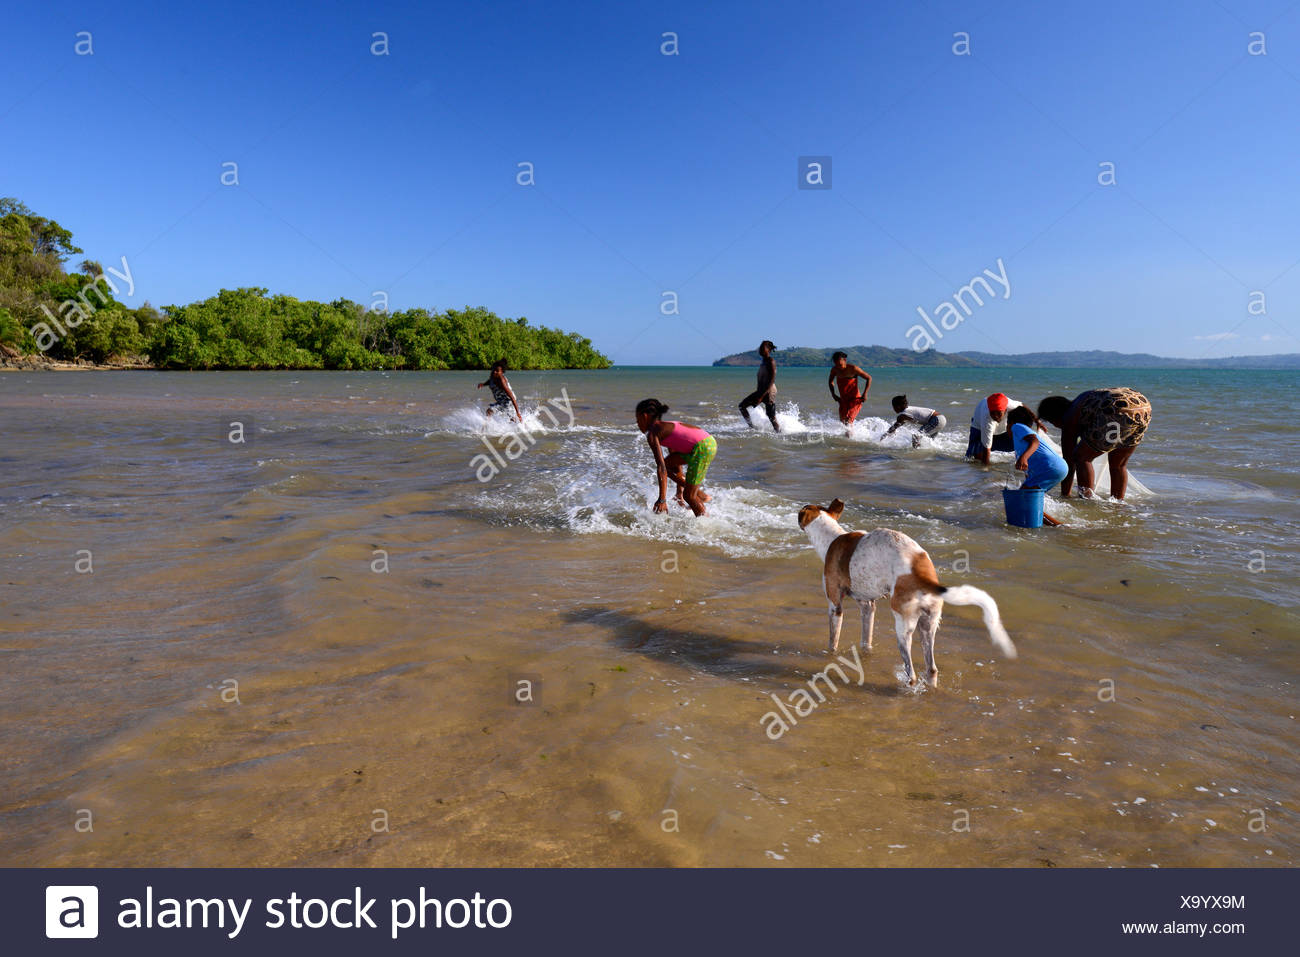 African women are fishing with a curtain, Madagascar, Nosy Be, Lokobe Reserva - Stock Image